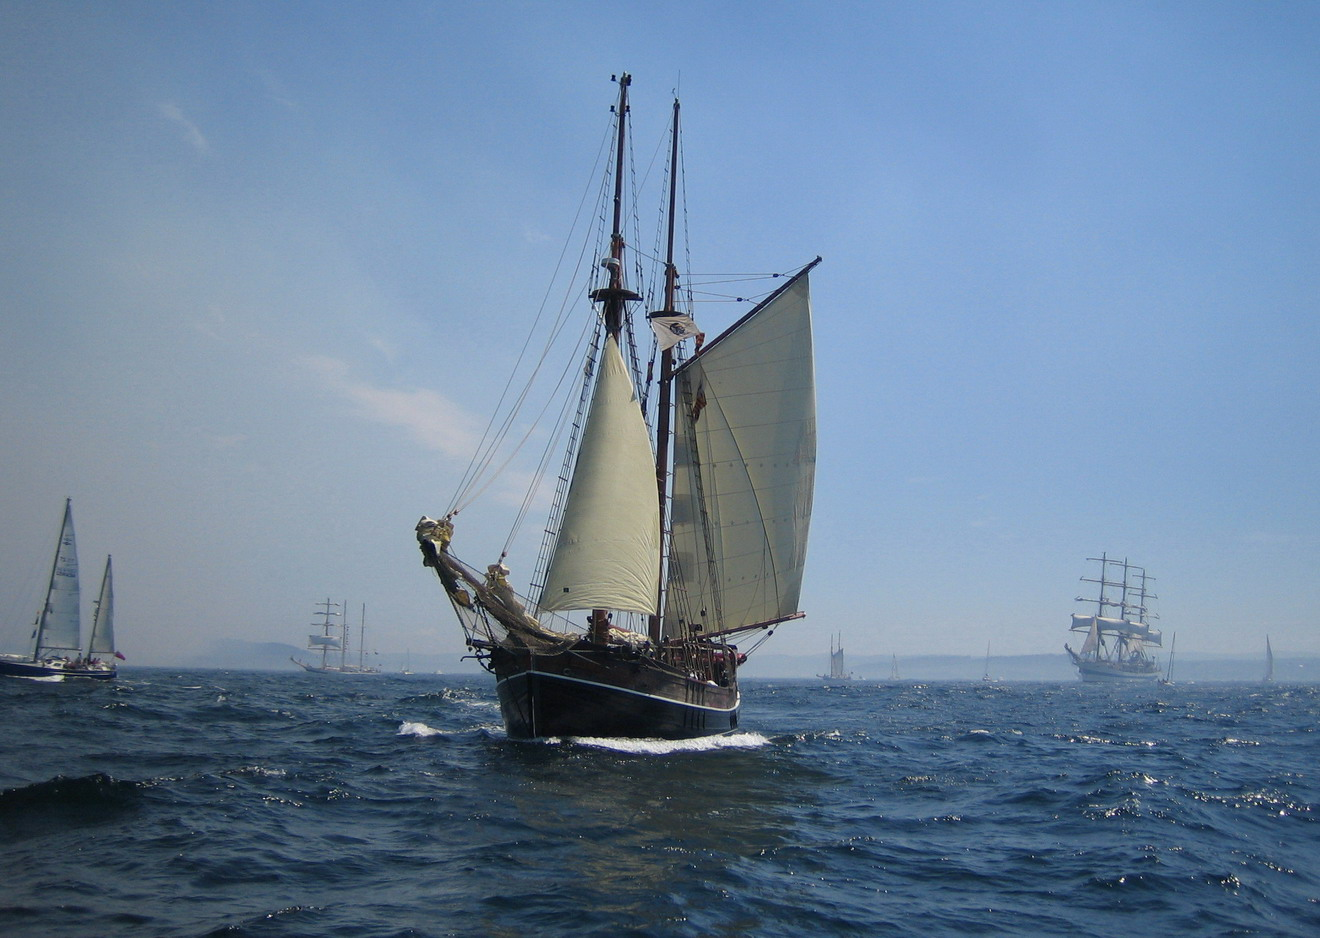 море,яхта,SPARTA,Мир,Ла-Корунья,The Tall Ships' Races,Cutty Sark